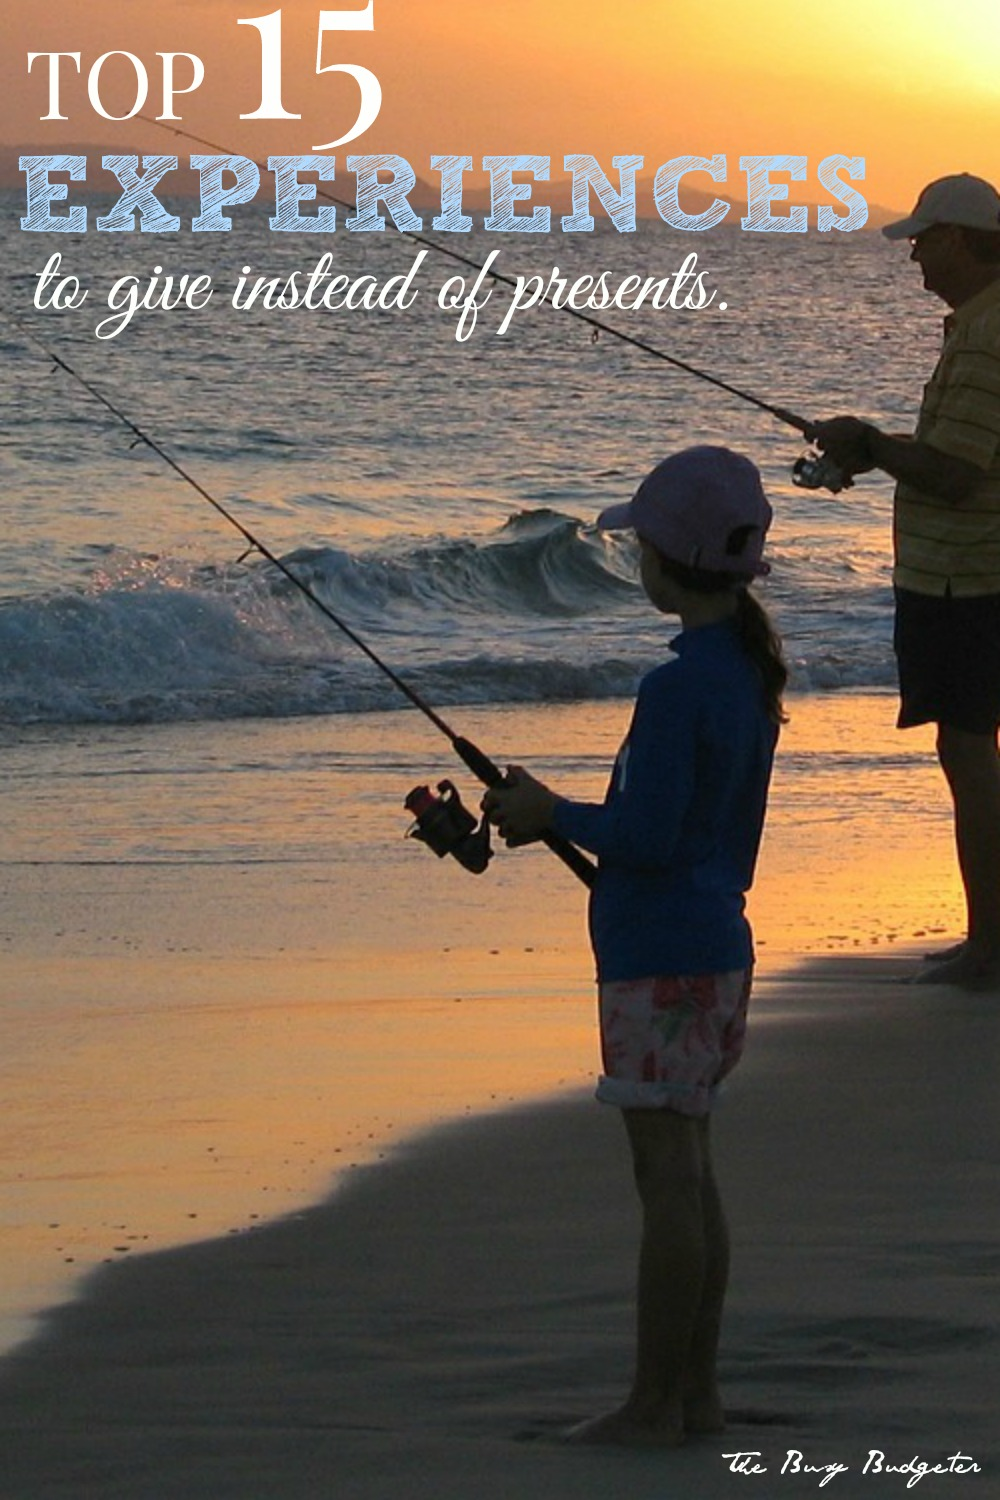 """Give the Gift of Experiences, Not More """"Stuff"""" - The Busy Budgeter"""